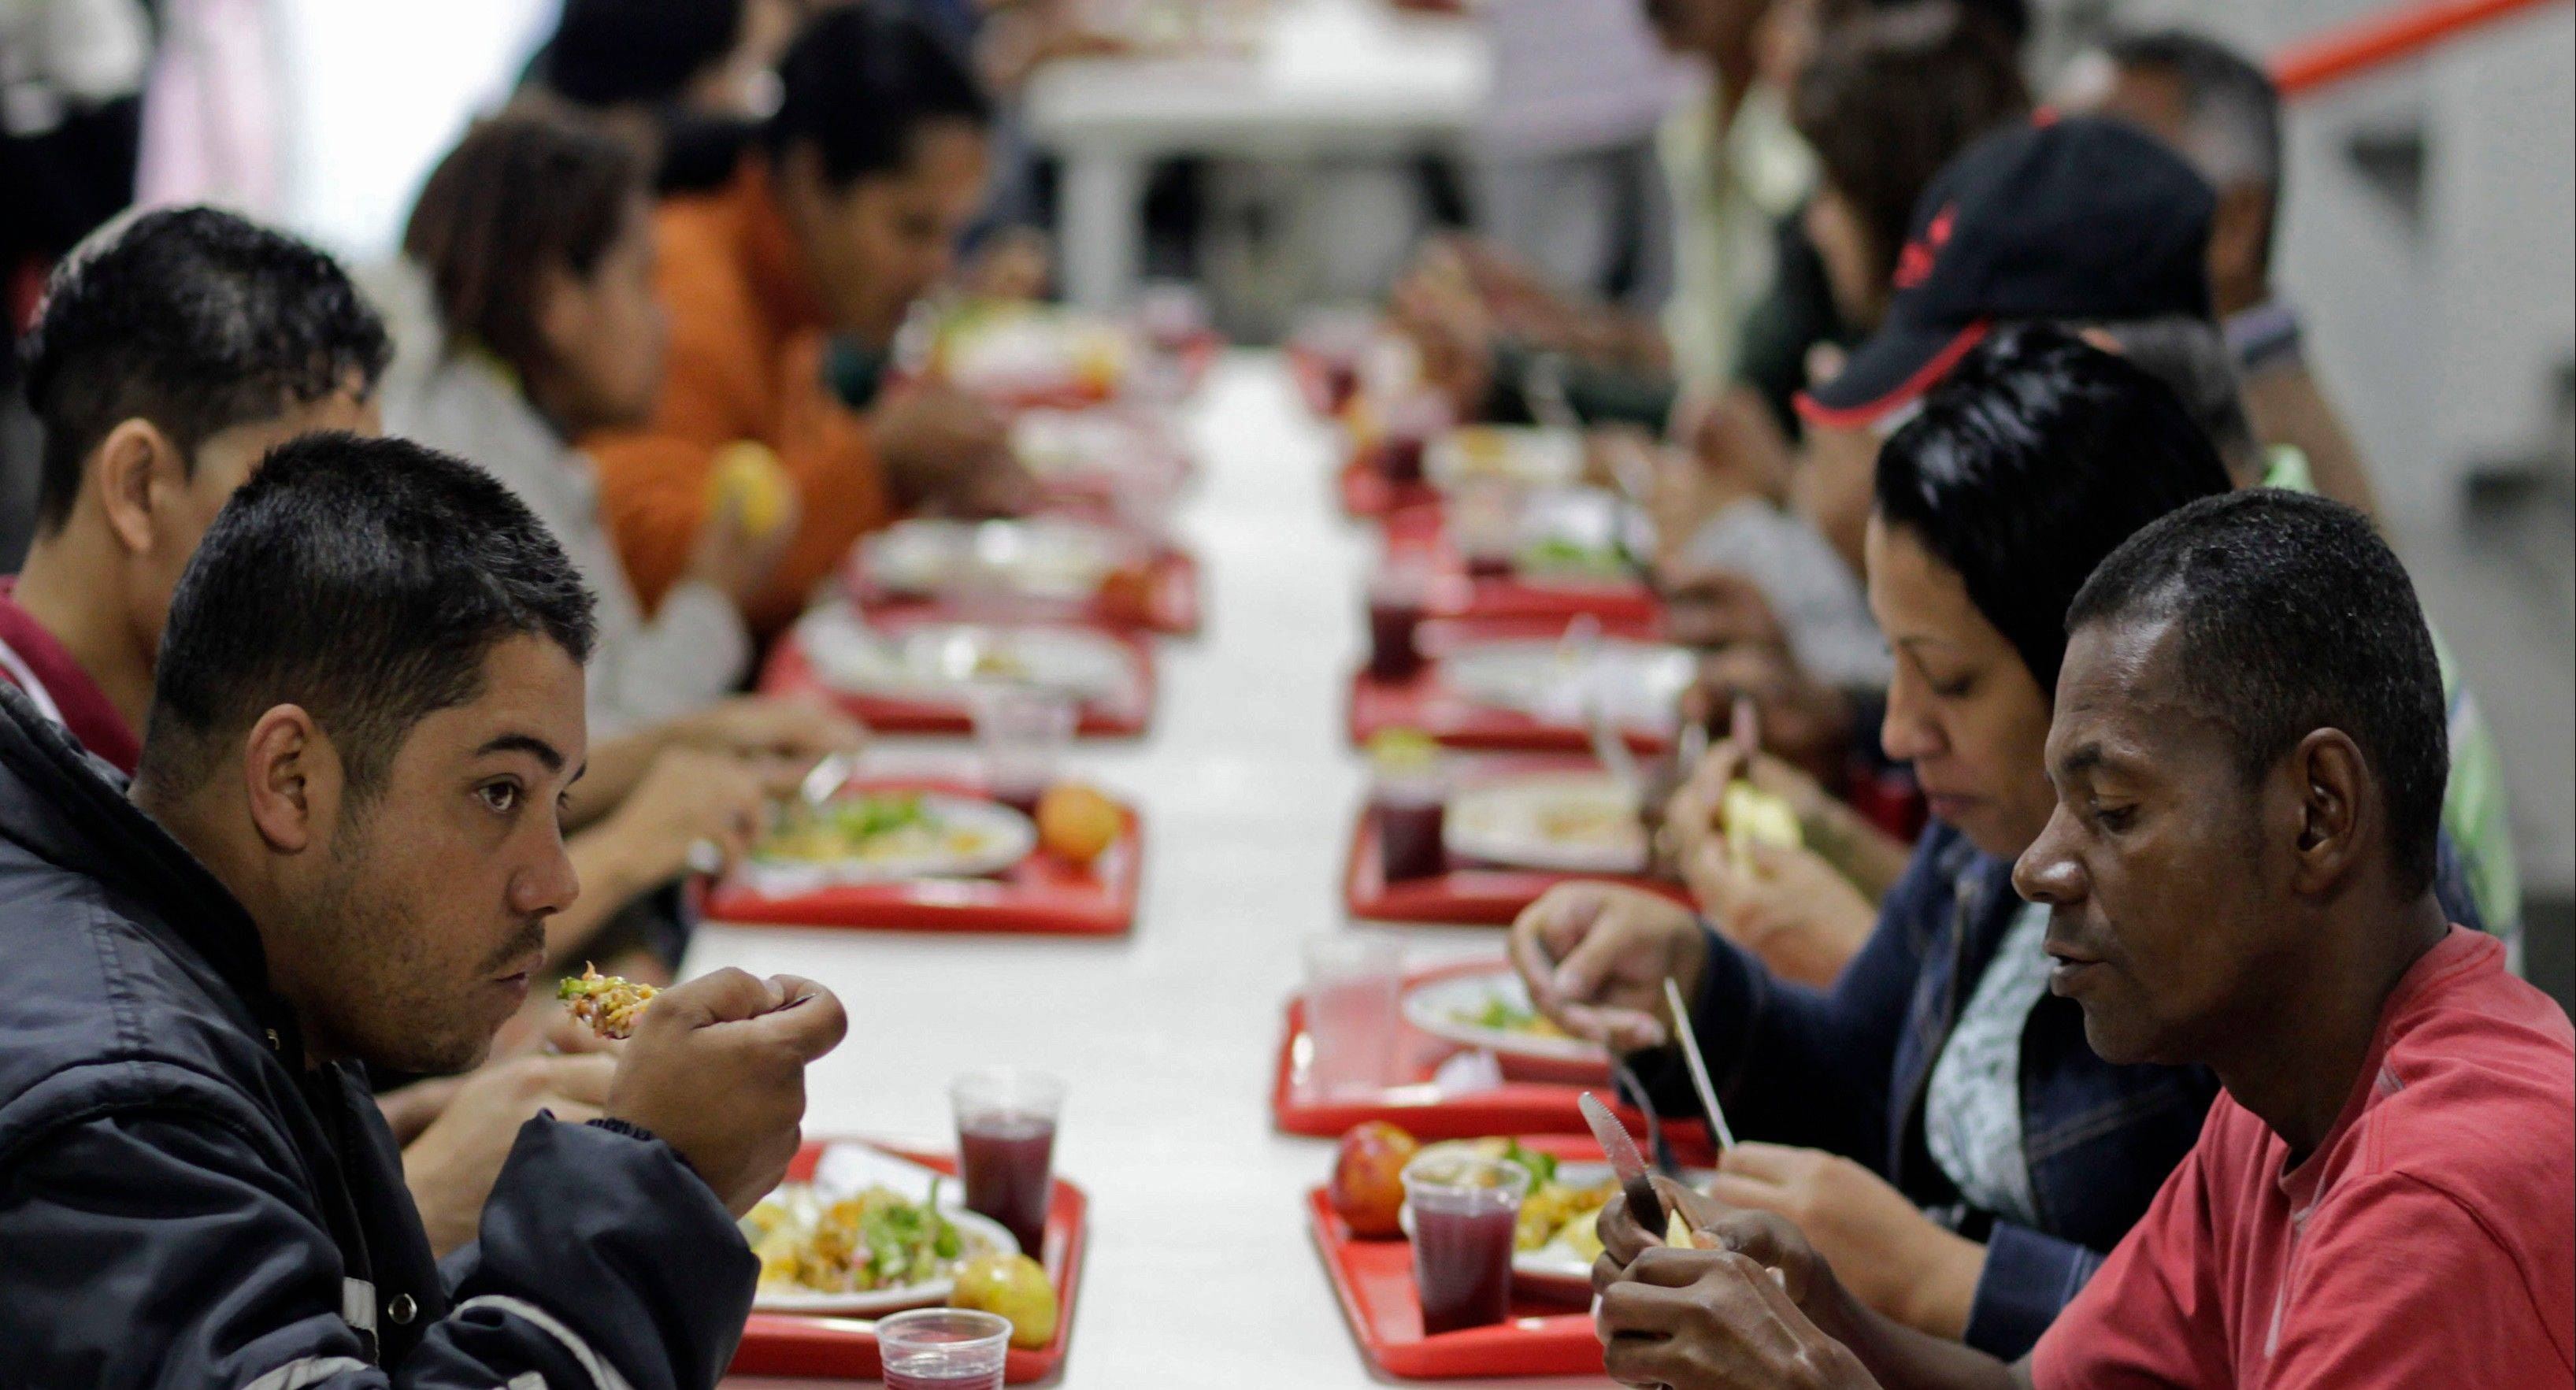 People eat at a popular restaurant sponsored by the Brazilian government in Sao Paulo, Brazil.